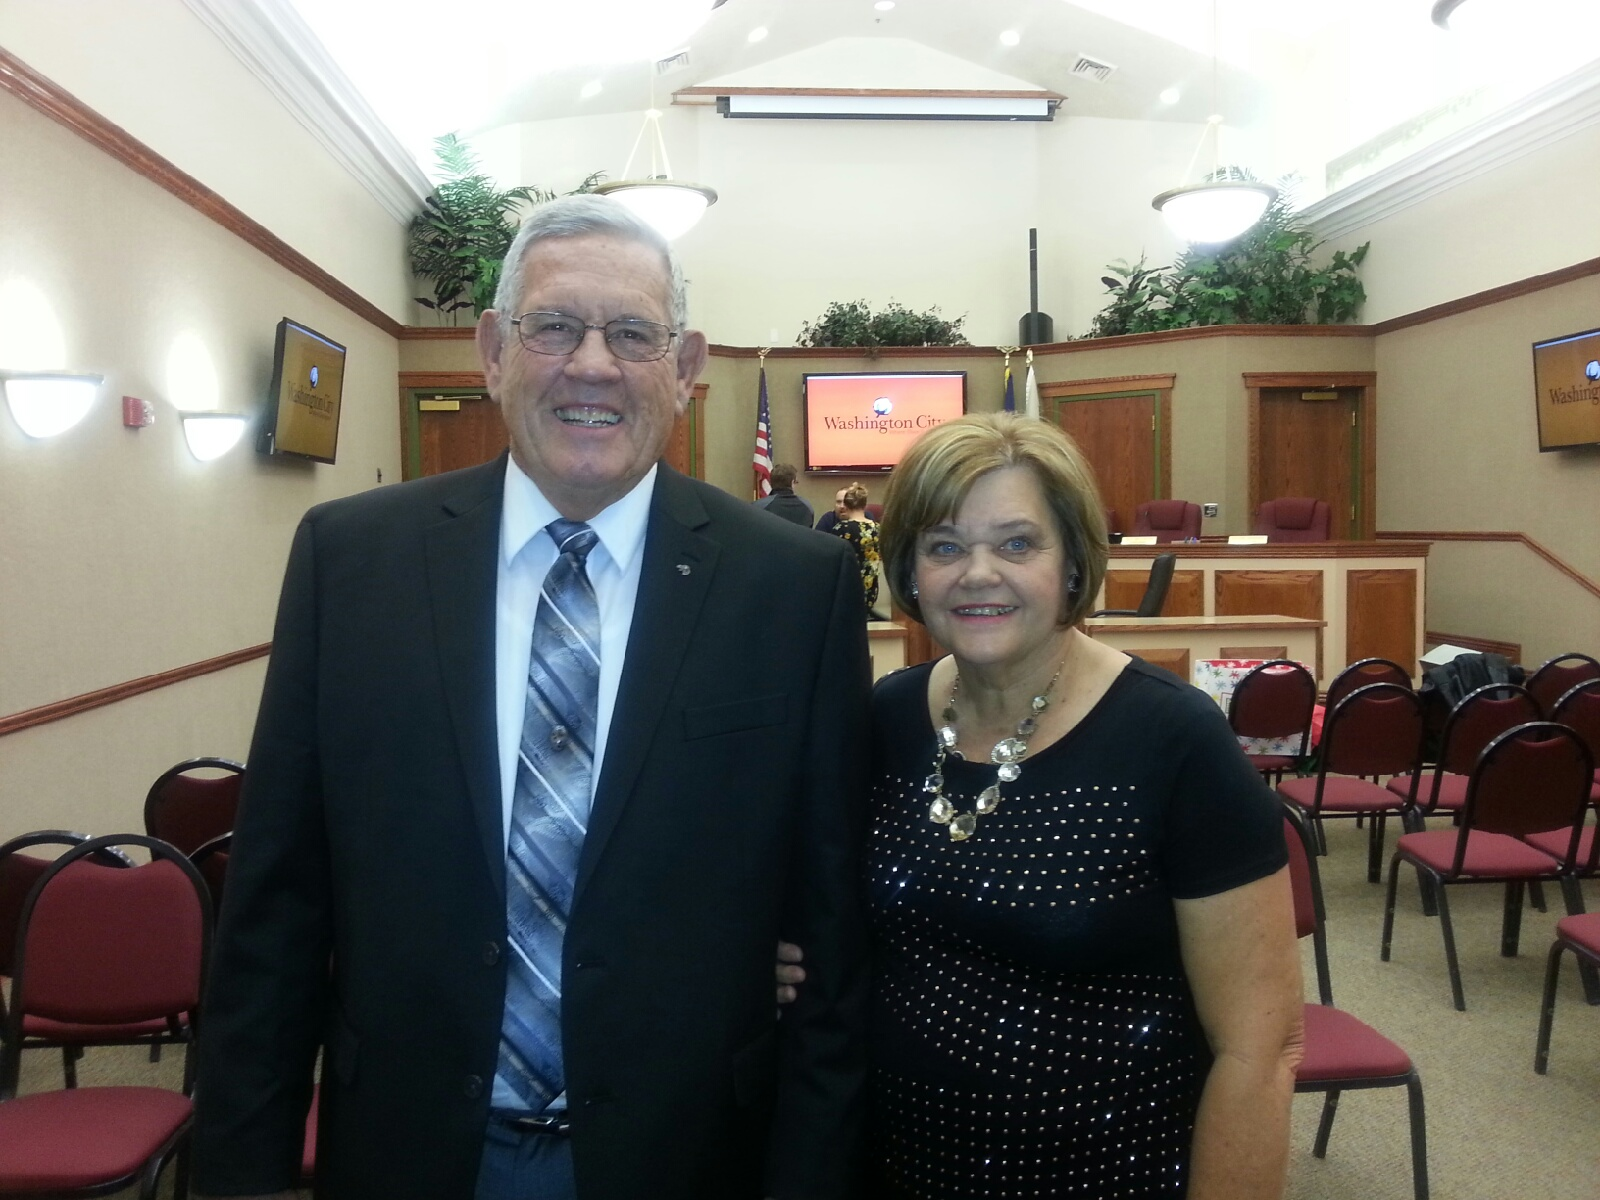 L-R: Lee Bunnell and his wife at the Washington City Offices. Bunnell is retiring as the city's justice court judge at the end of the year and will be succeeded by Thad Seegmiller, Washington City, Utah, Dec. 14, 2016 | Photo courtesu of Shelly Griffin, St. George News